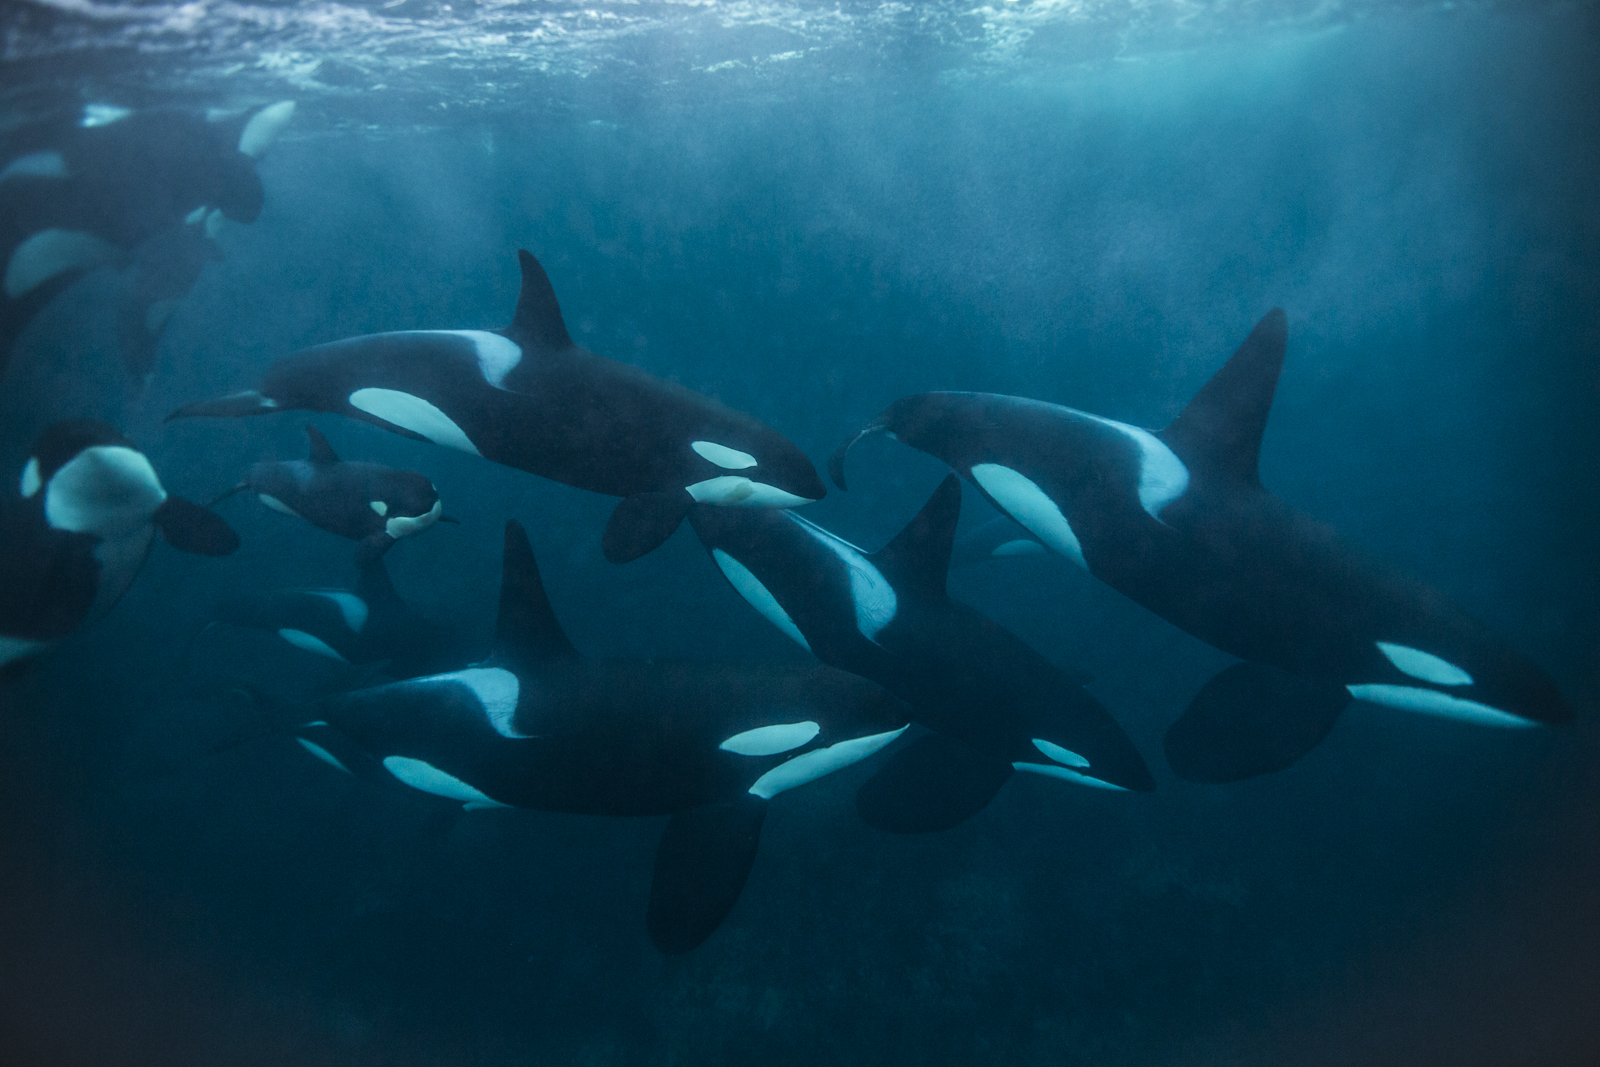 Now for Norway- Check out these incredible images of feeding orcas and humpback whales